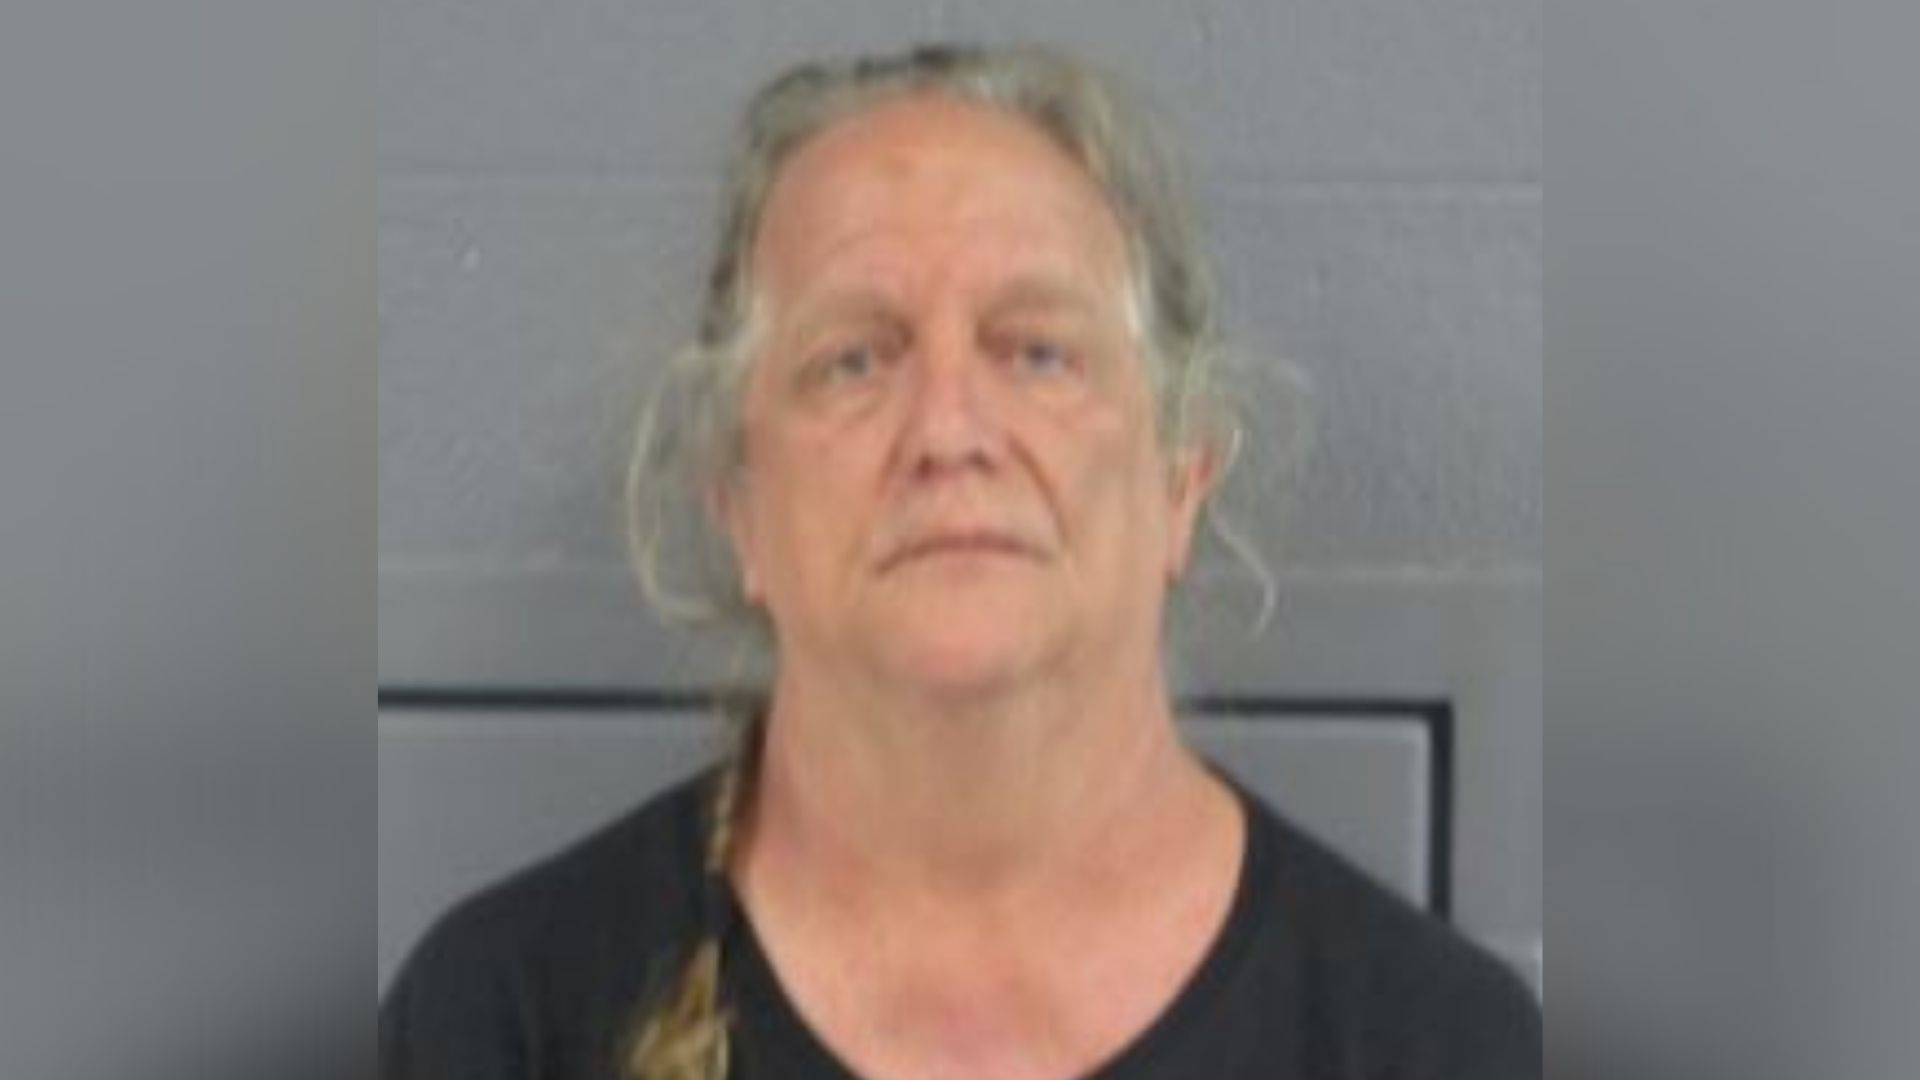 Angry over missed appointments, man issues threats against West Virginia hospital; faces charges